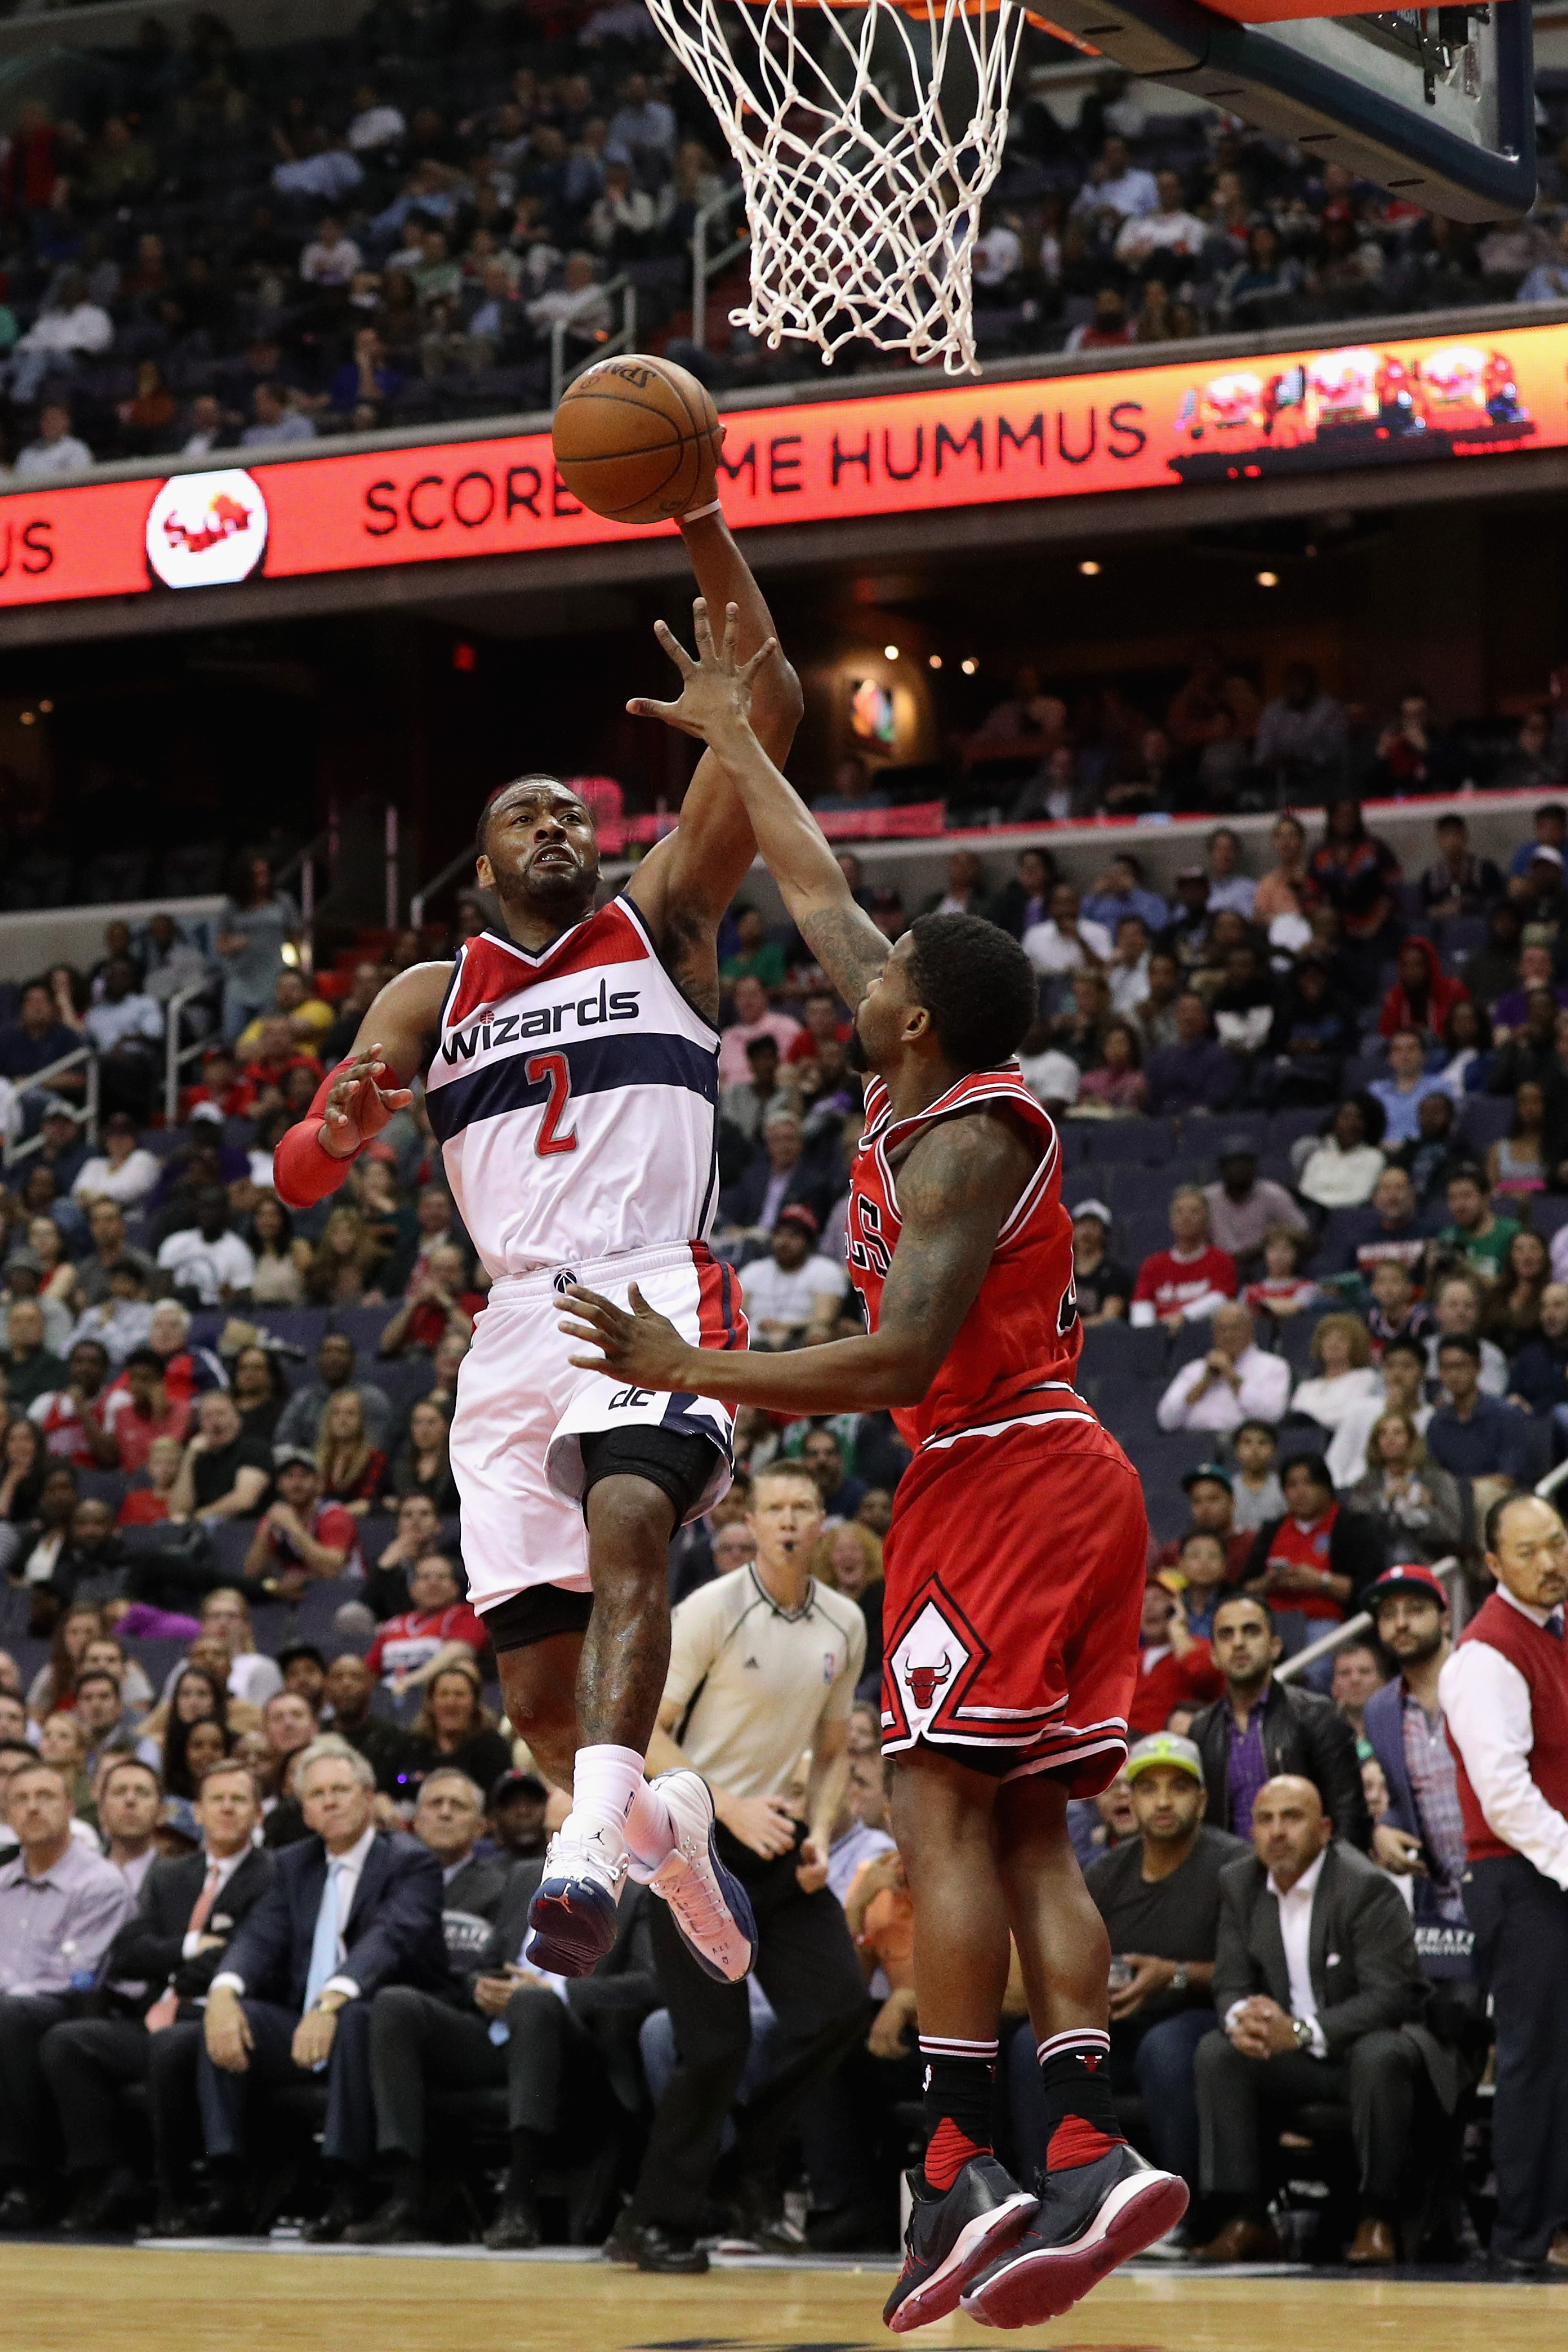 WASHINGTON, DC - MARCH 16: John Wall #2 of the Washington Wizards puts up a shot over Aaron Brooks #0 of the Chicago Bulls in the second half at Verizon Center on March 16, 2016 in Washington, DC. (Photo by Rob Carr/Getty Images)